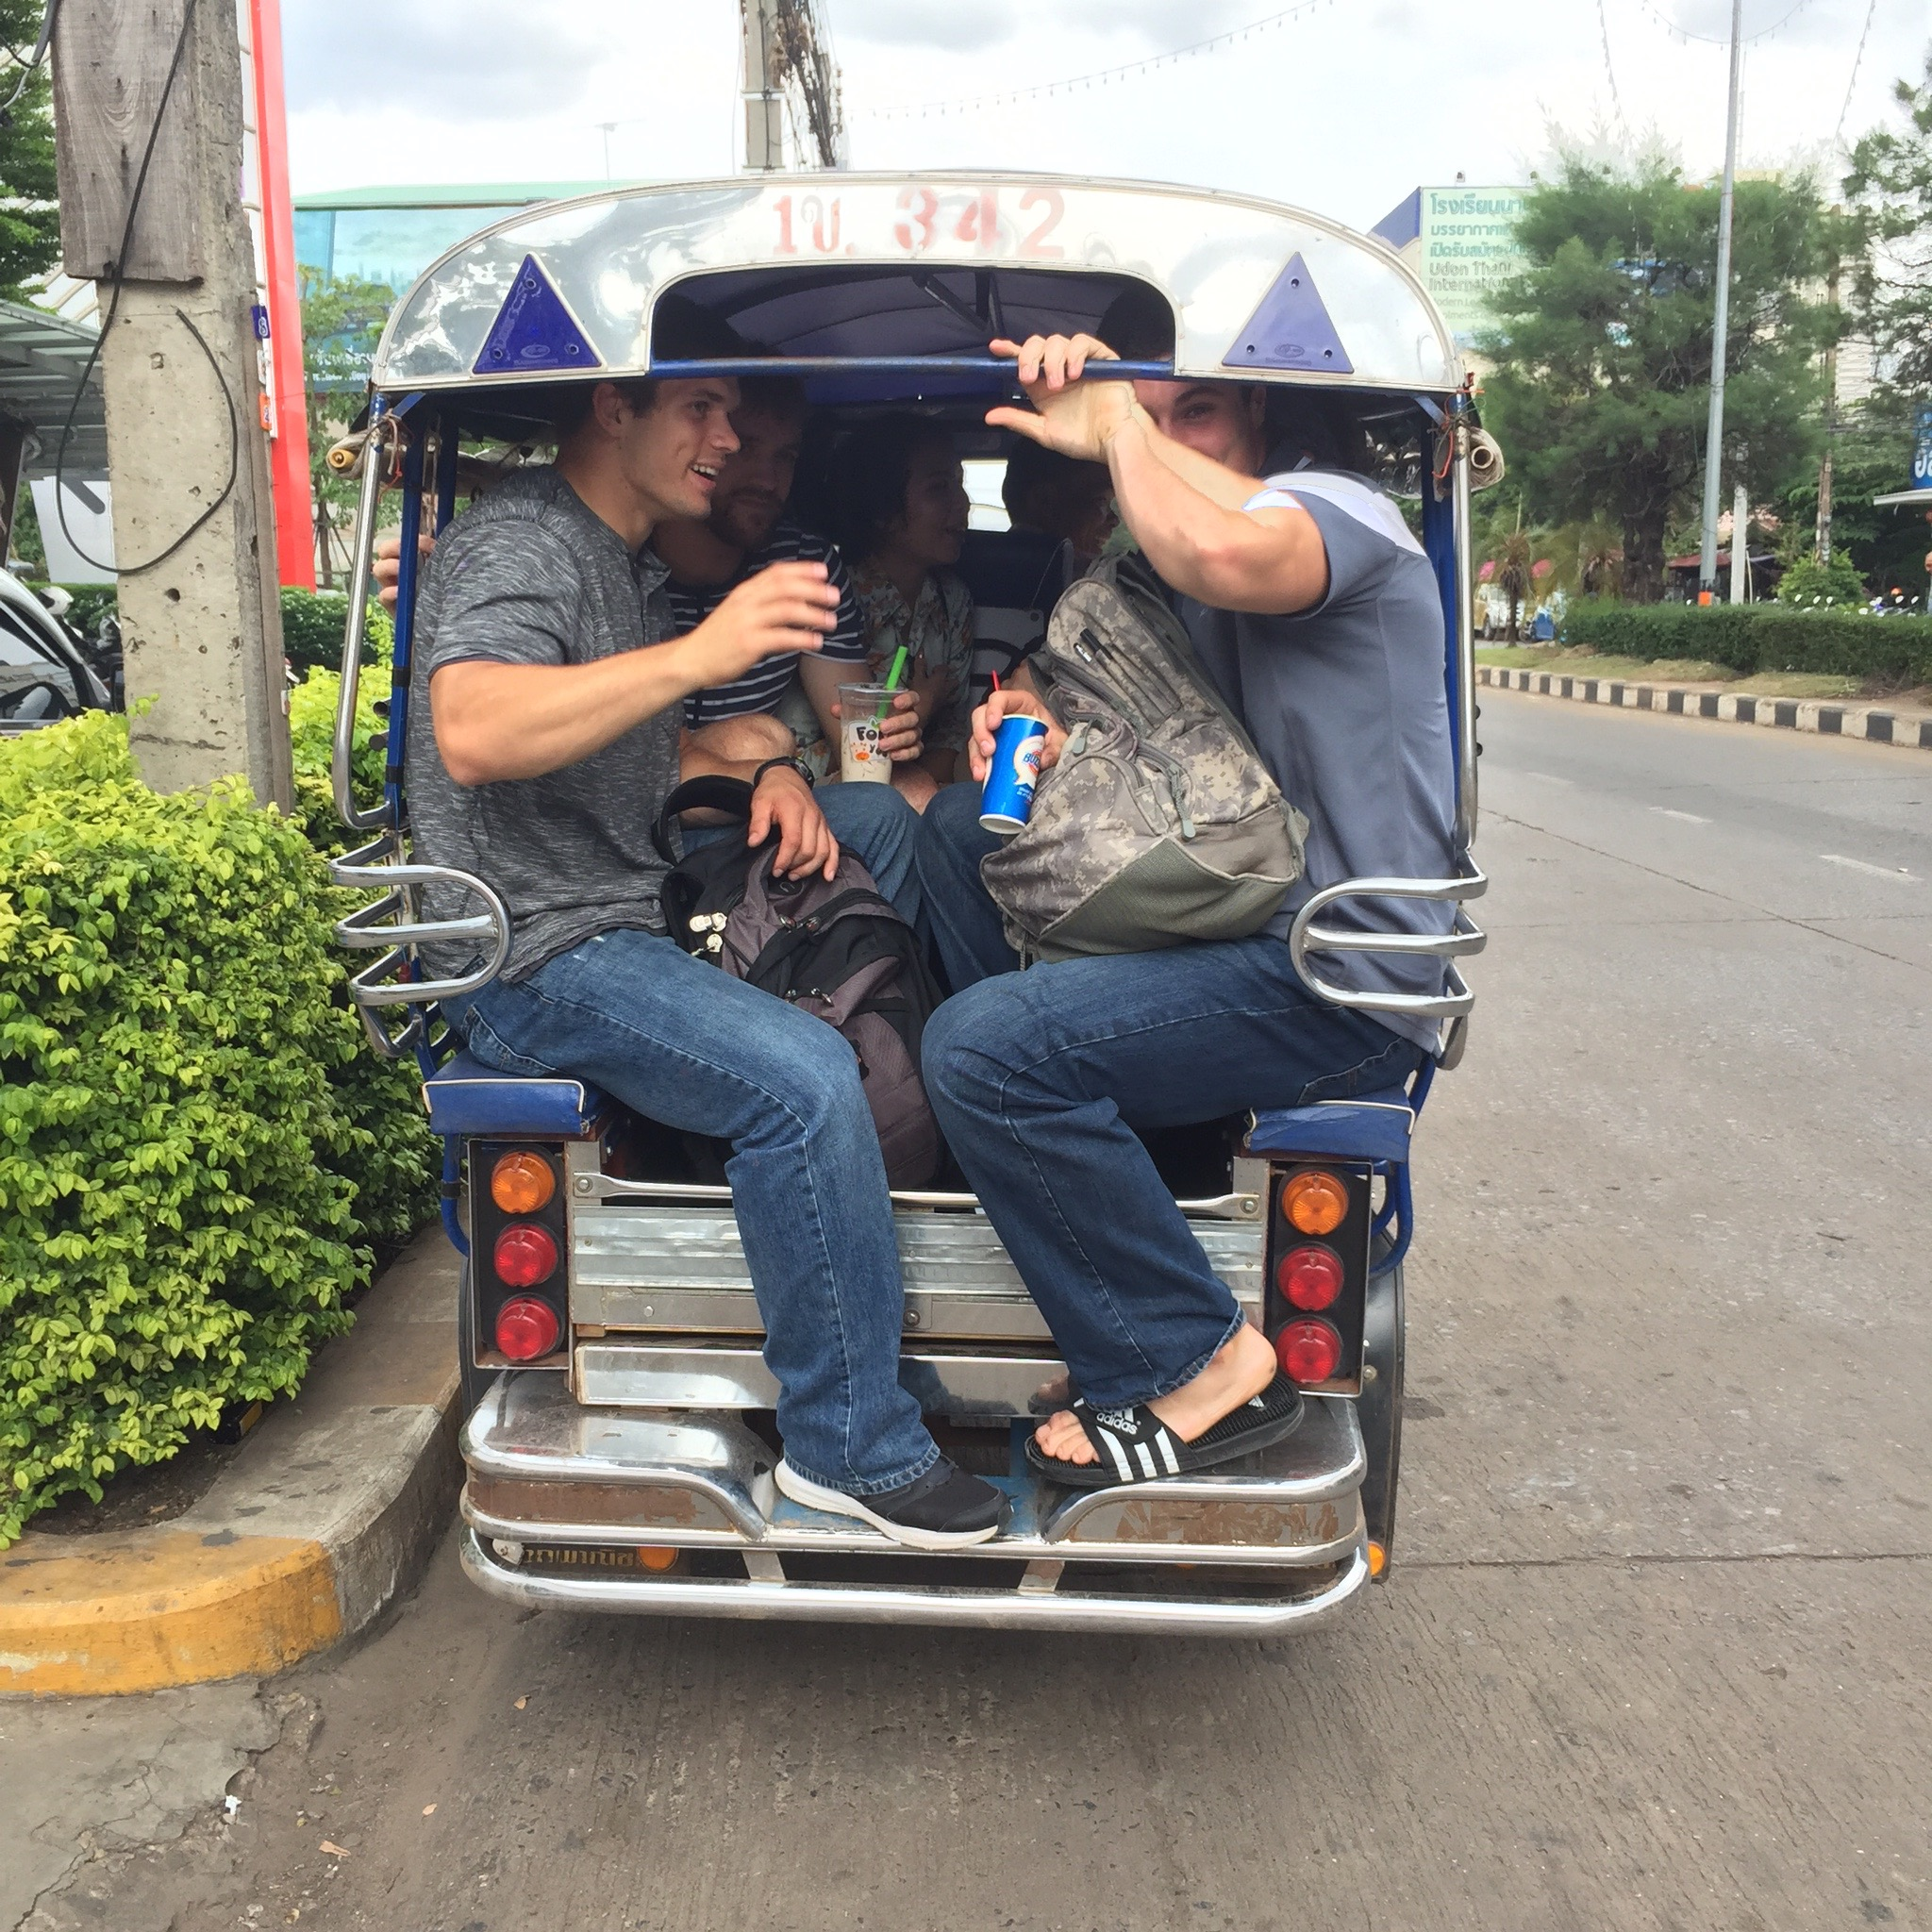 Trying to use Thai transportation